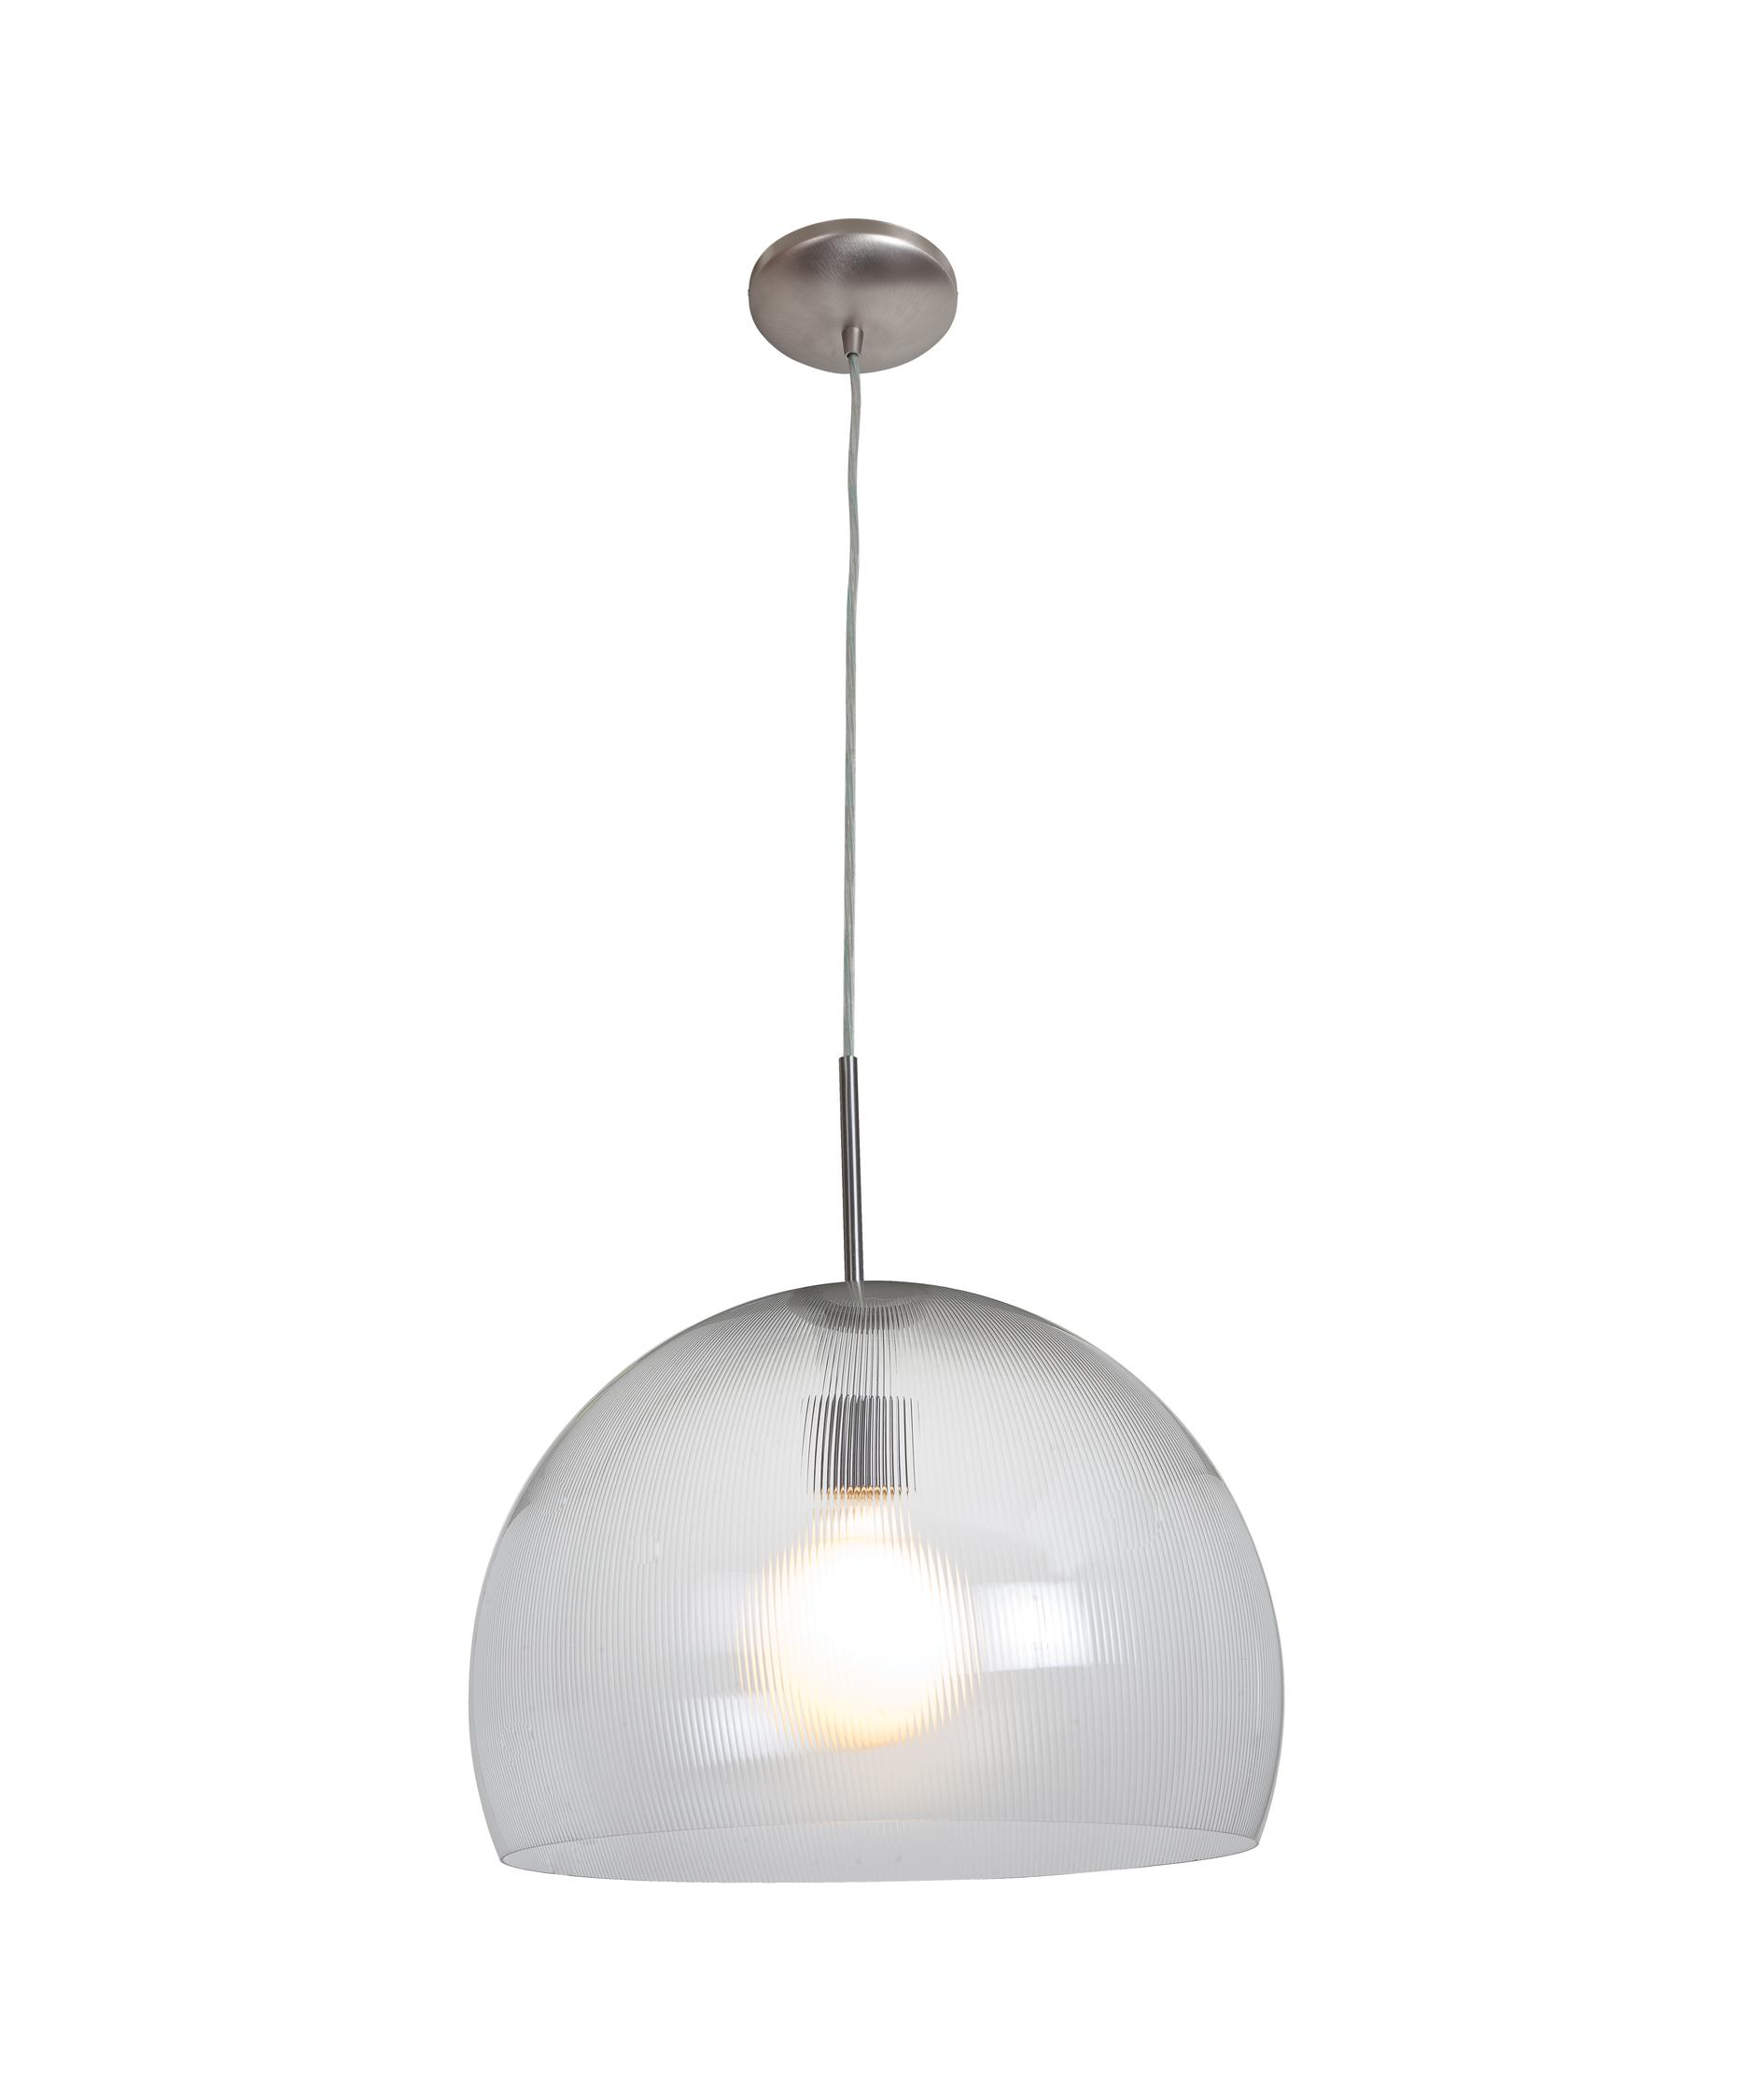 Access Lighting 23760 1R Acrolite 18 Inch Large Pendant